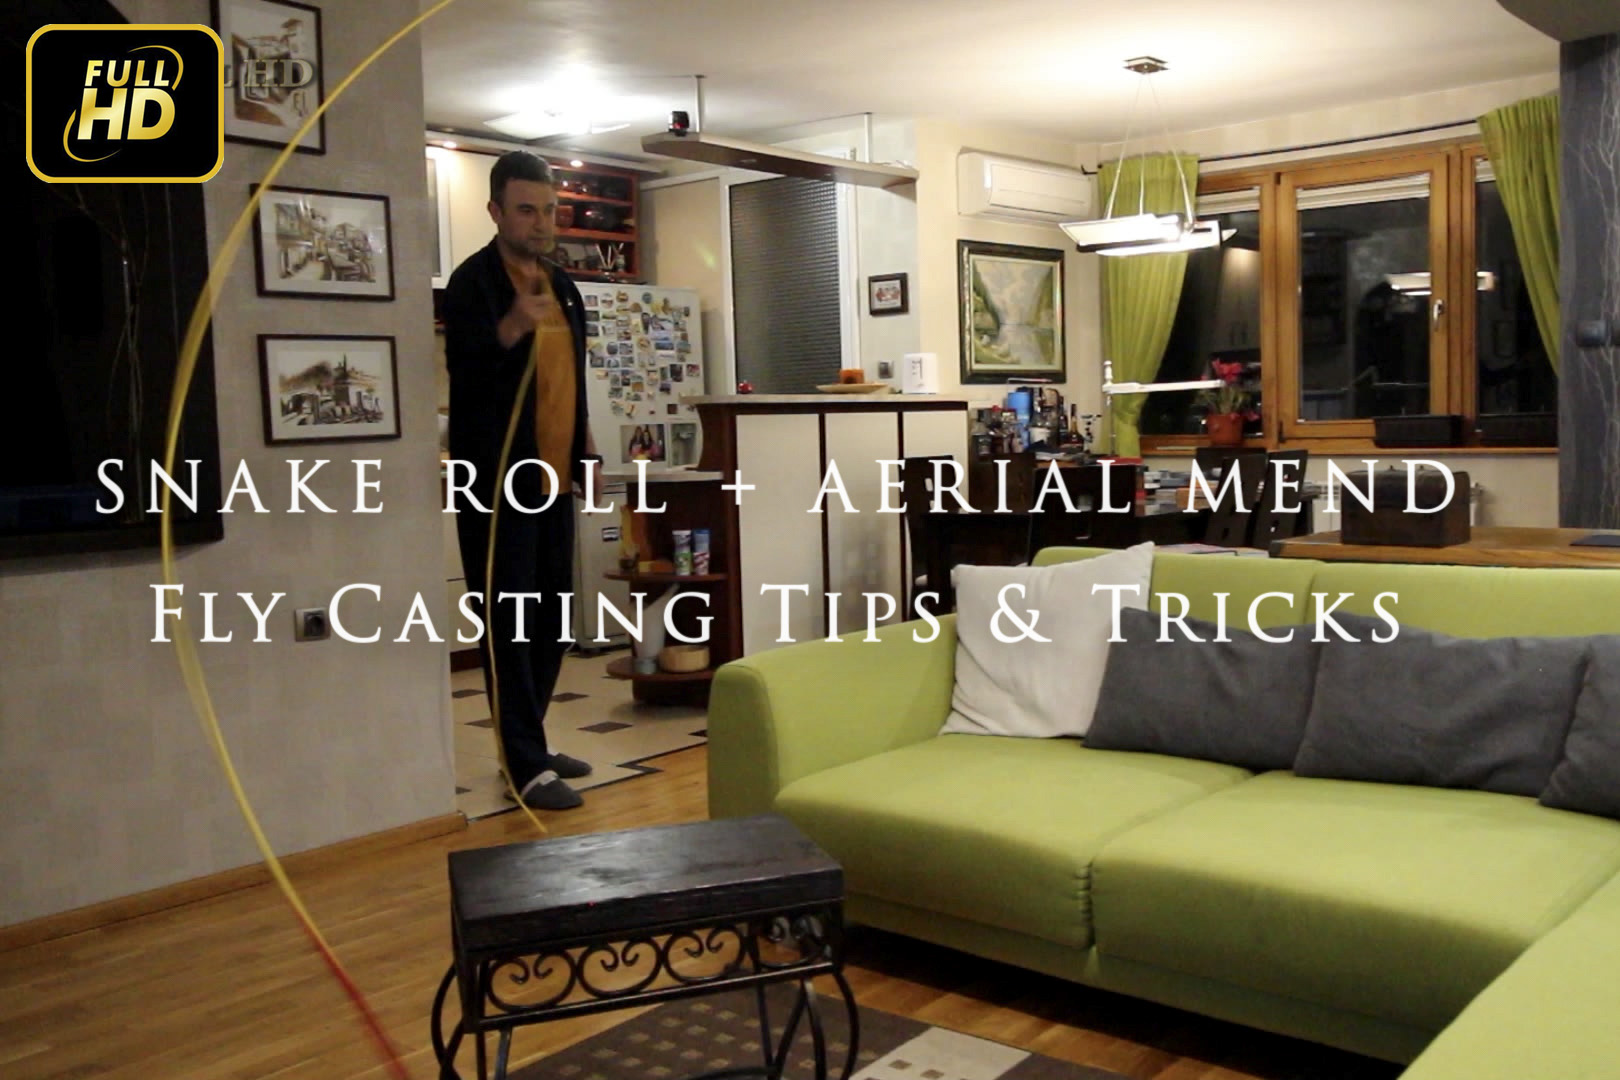 Snake Roll Cast + Aerial Mend